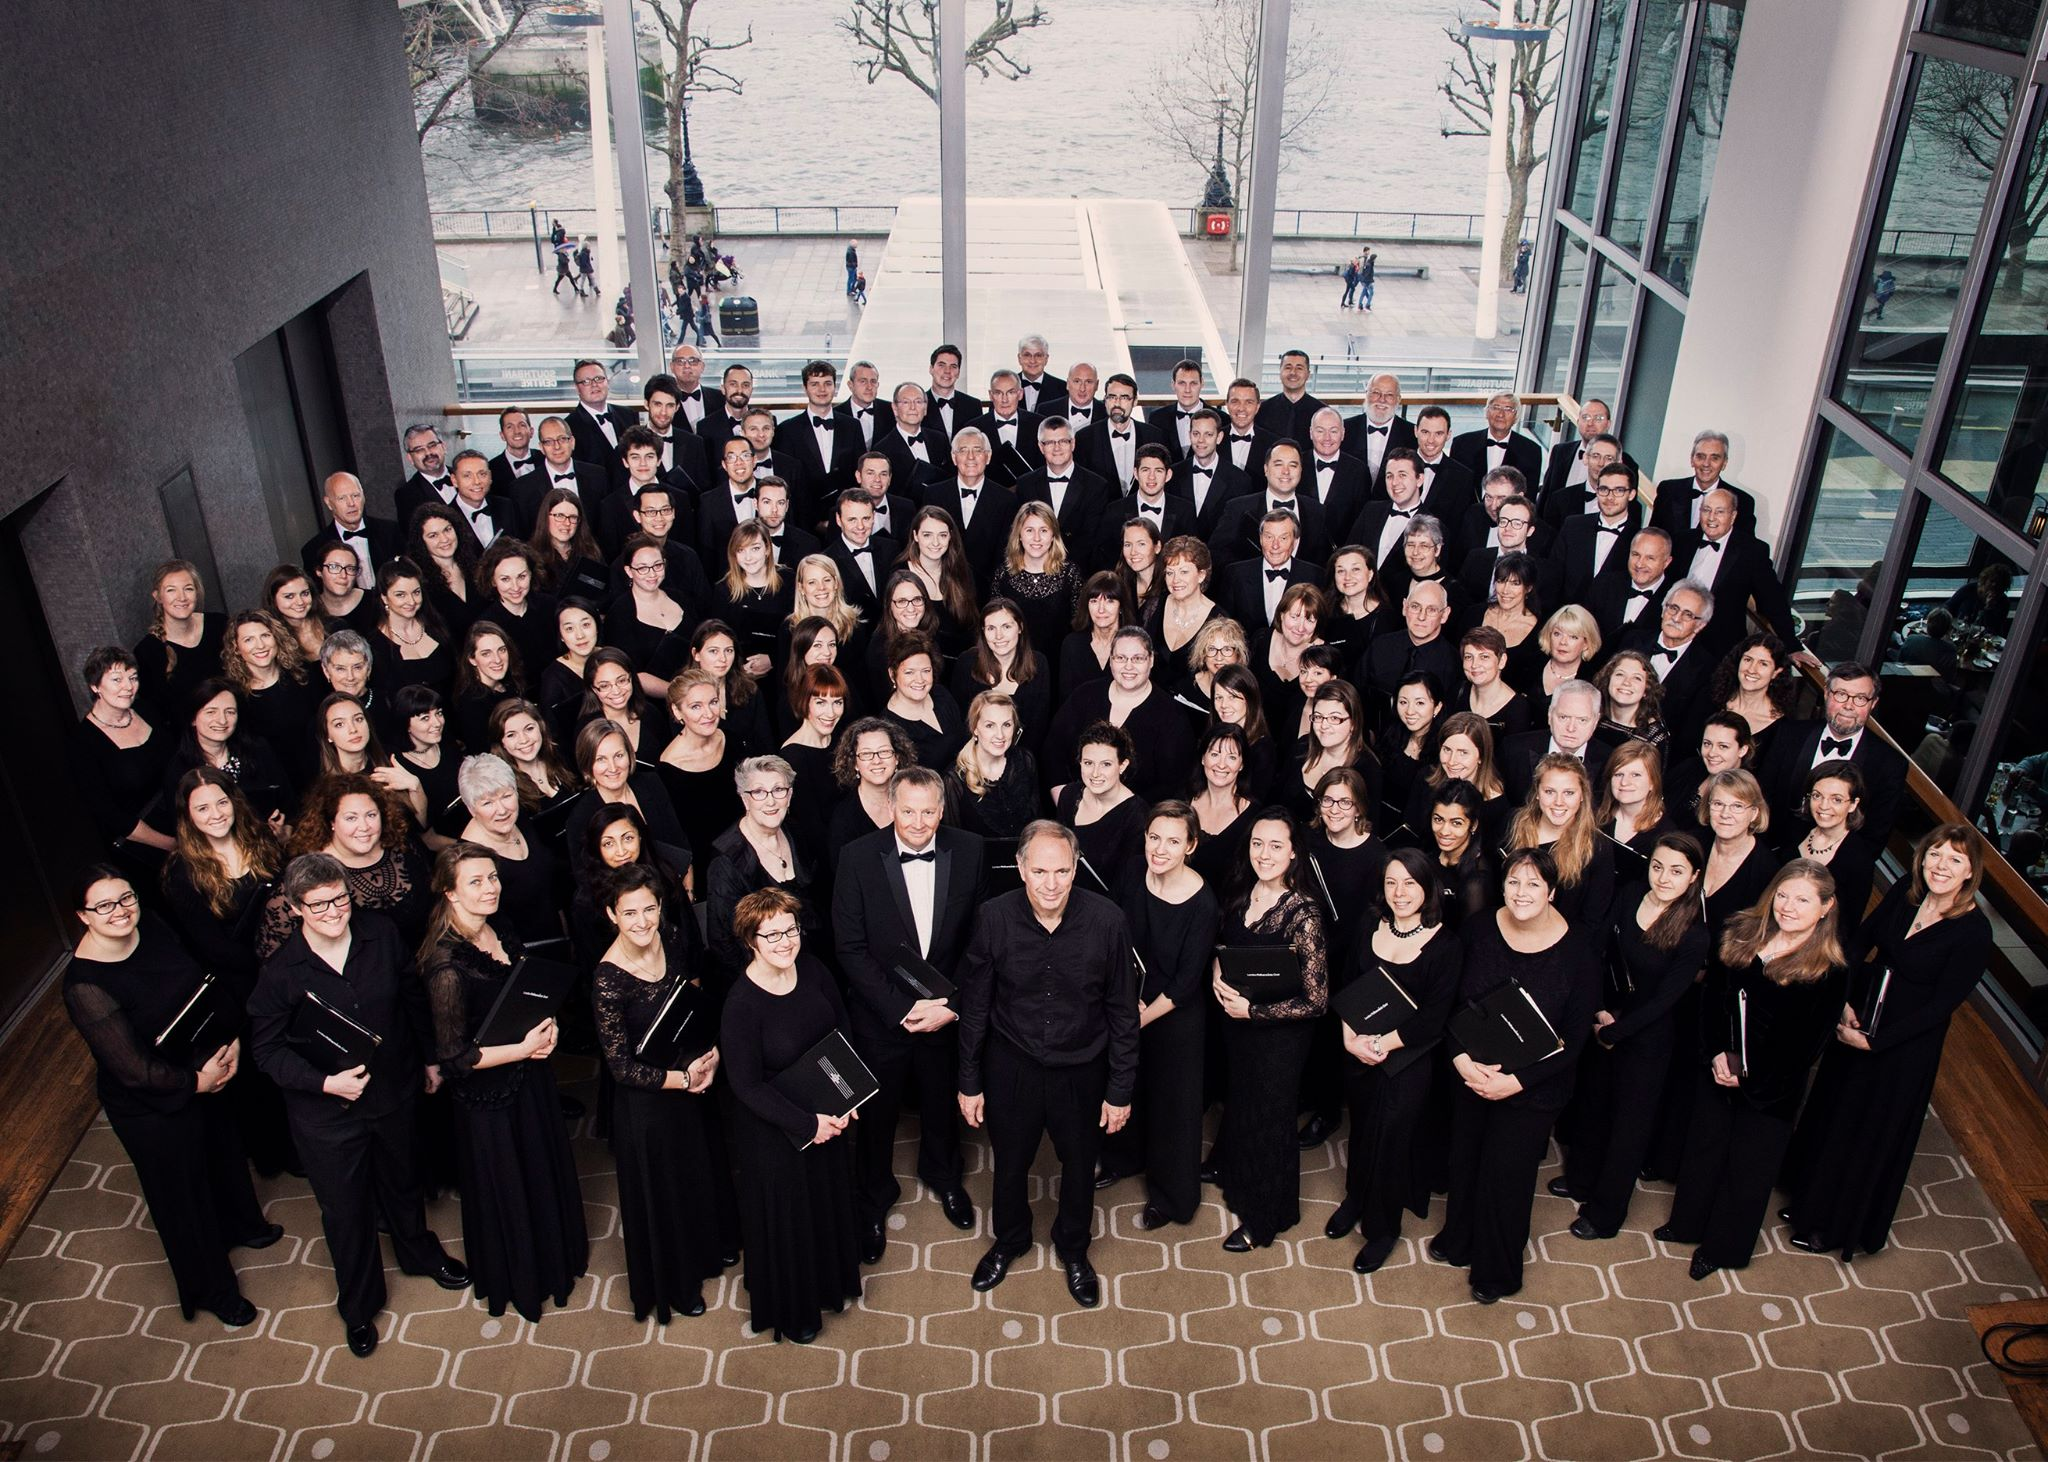 The Choir at the Royal Festival Hall